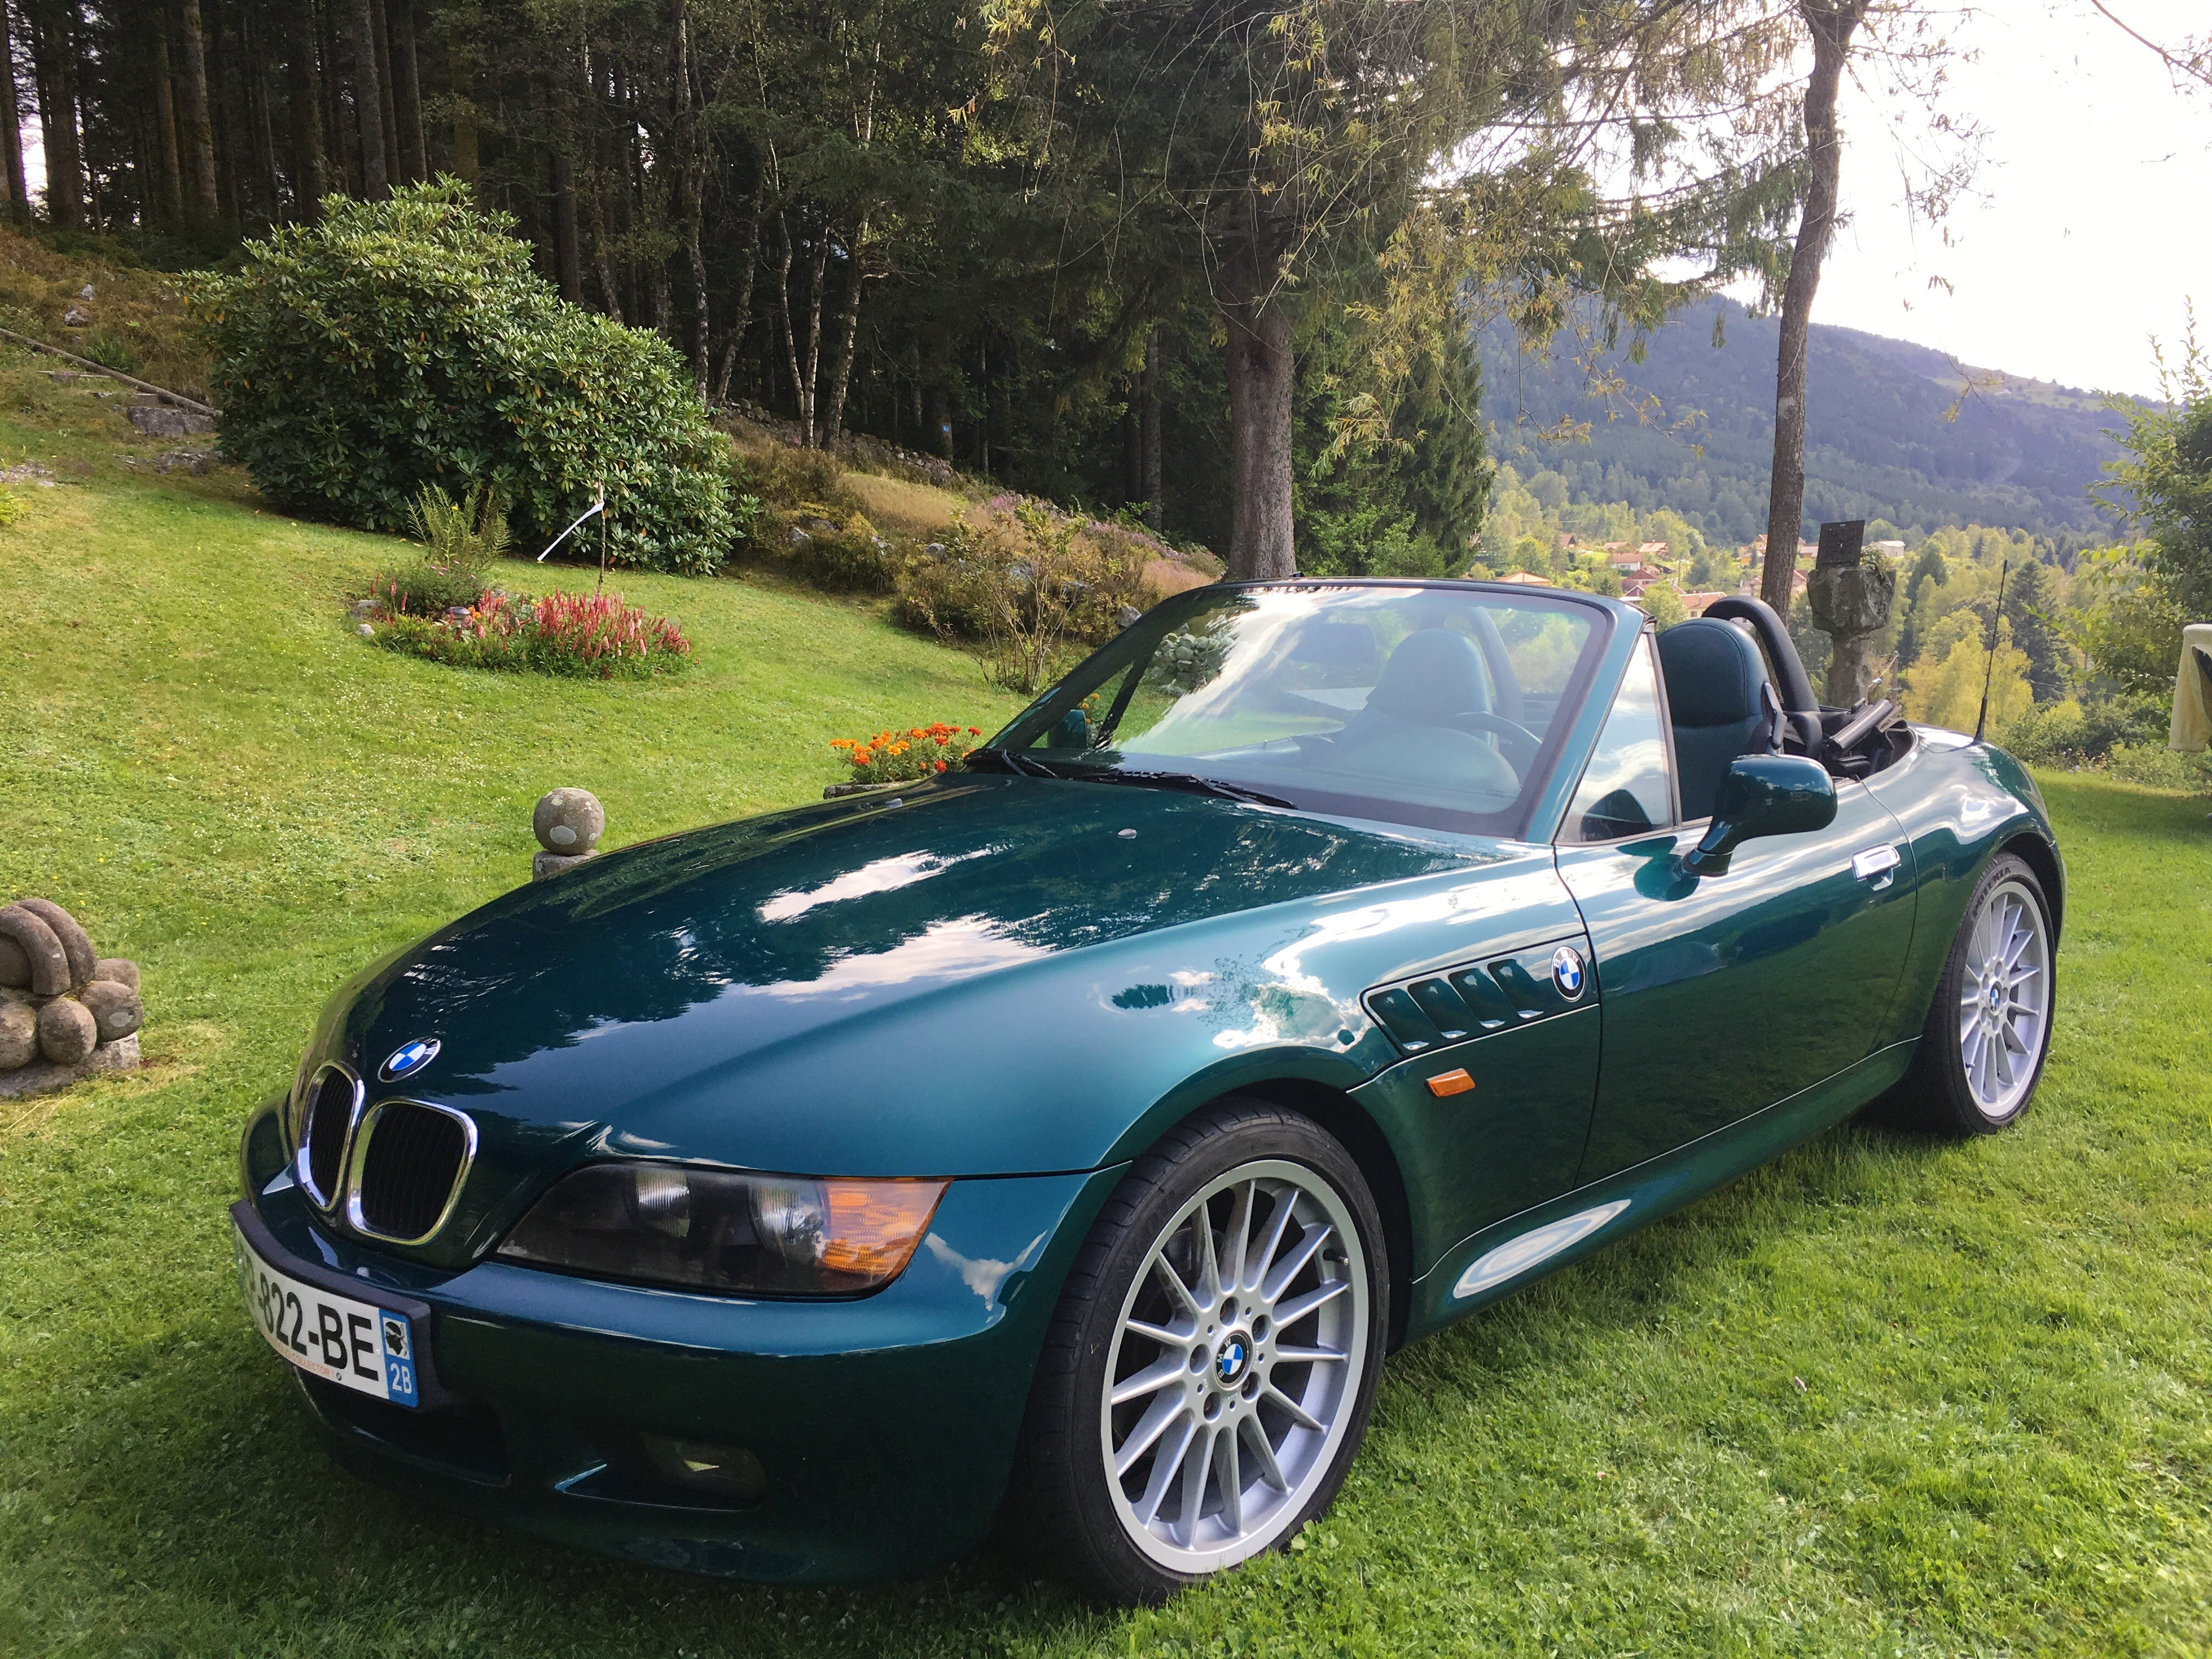 BMW Z3 Cabriolet, 1999, Essence